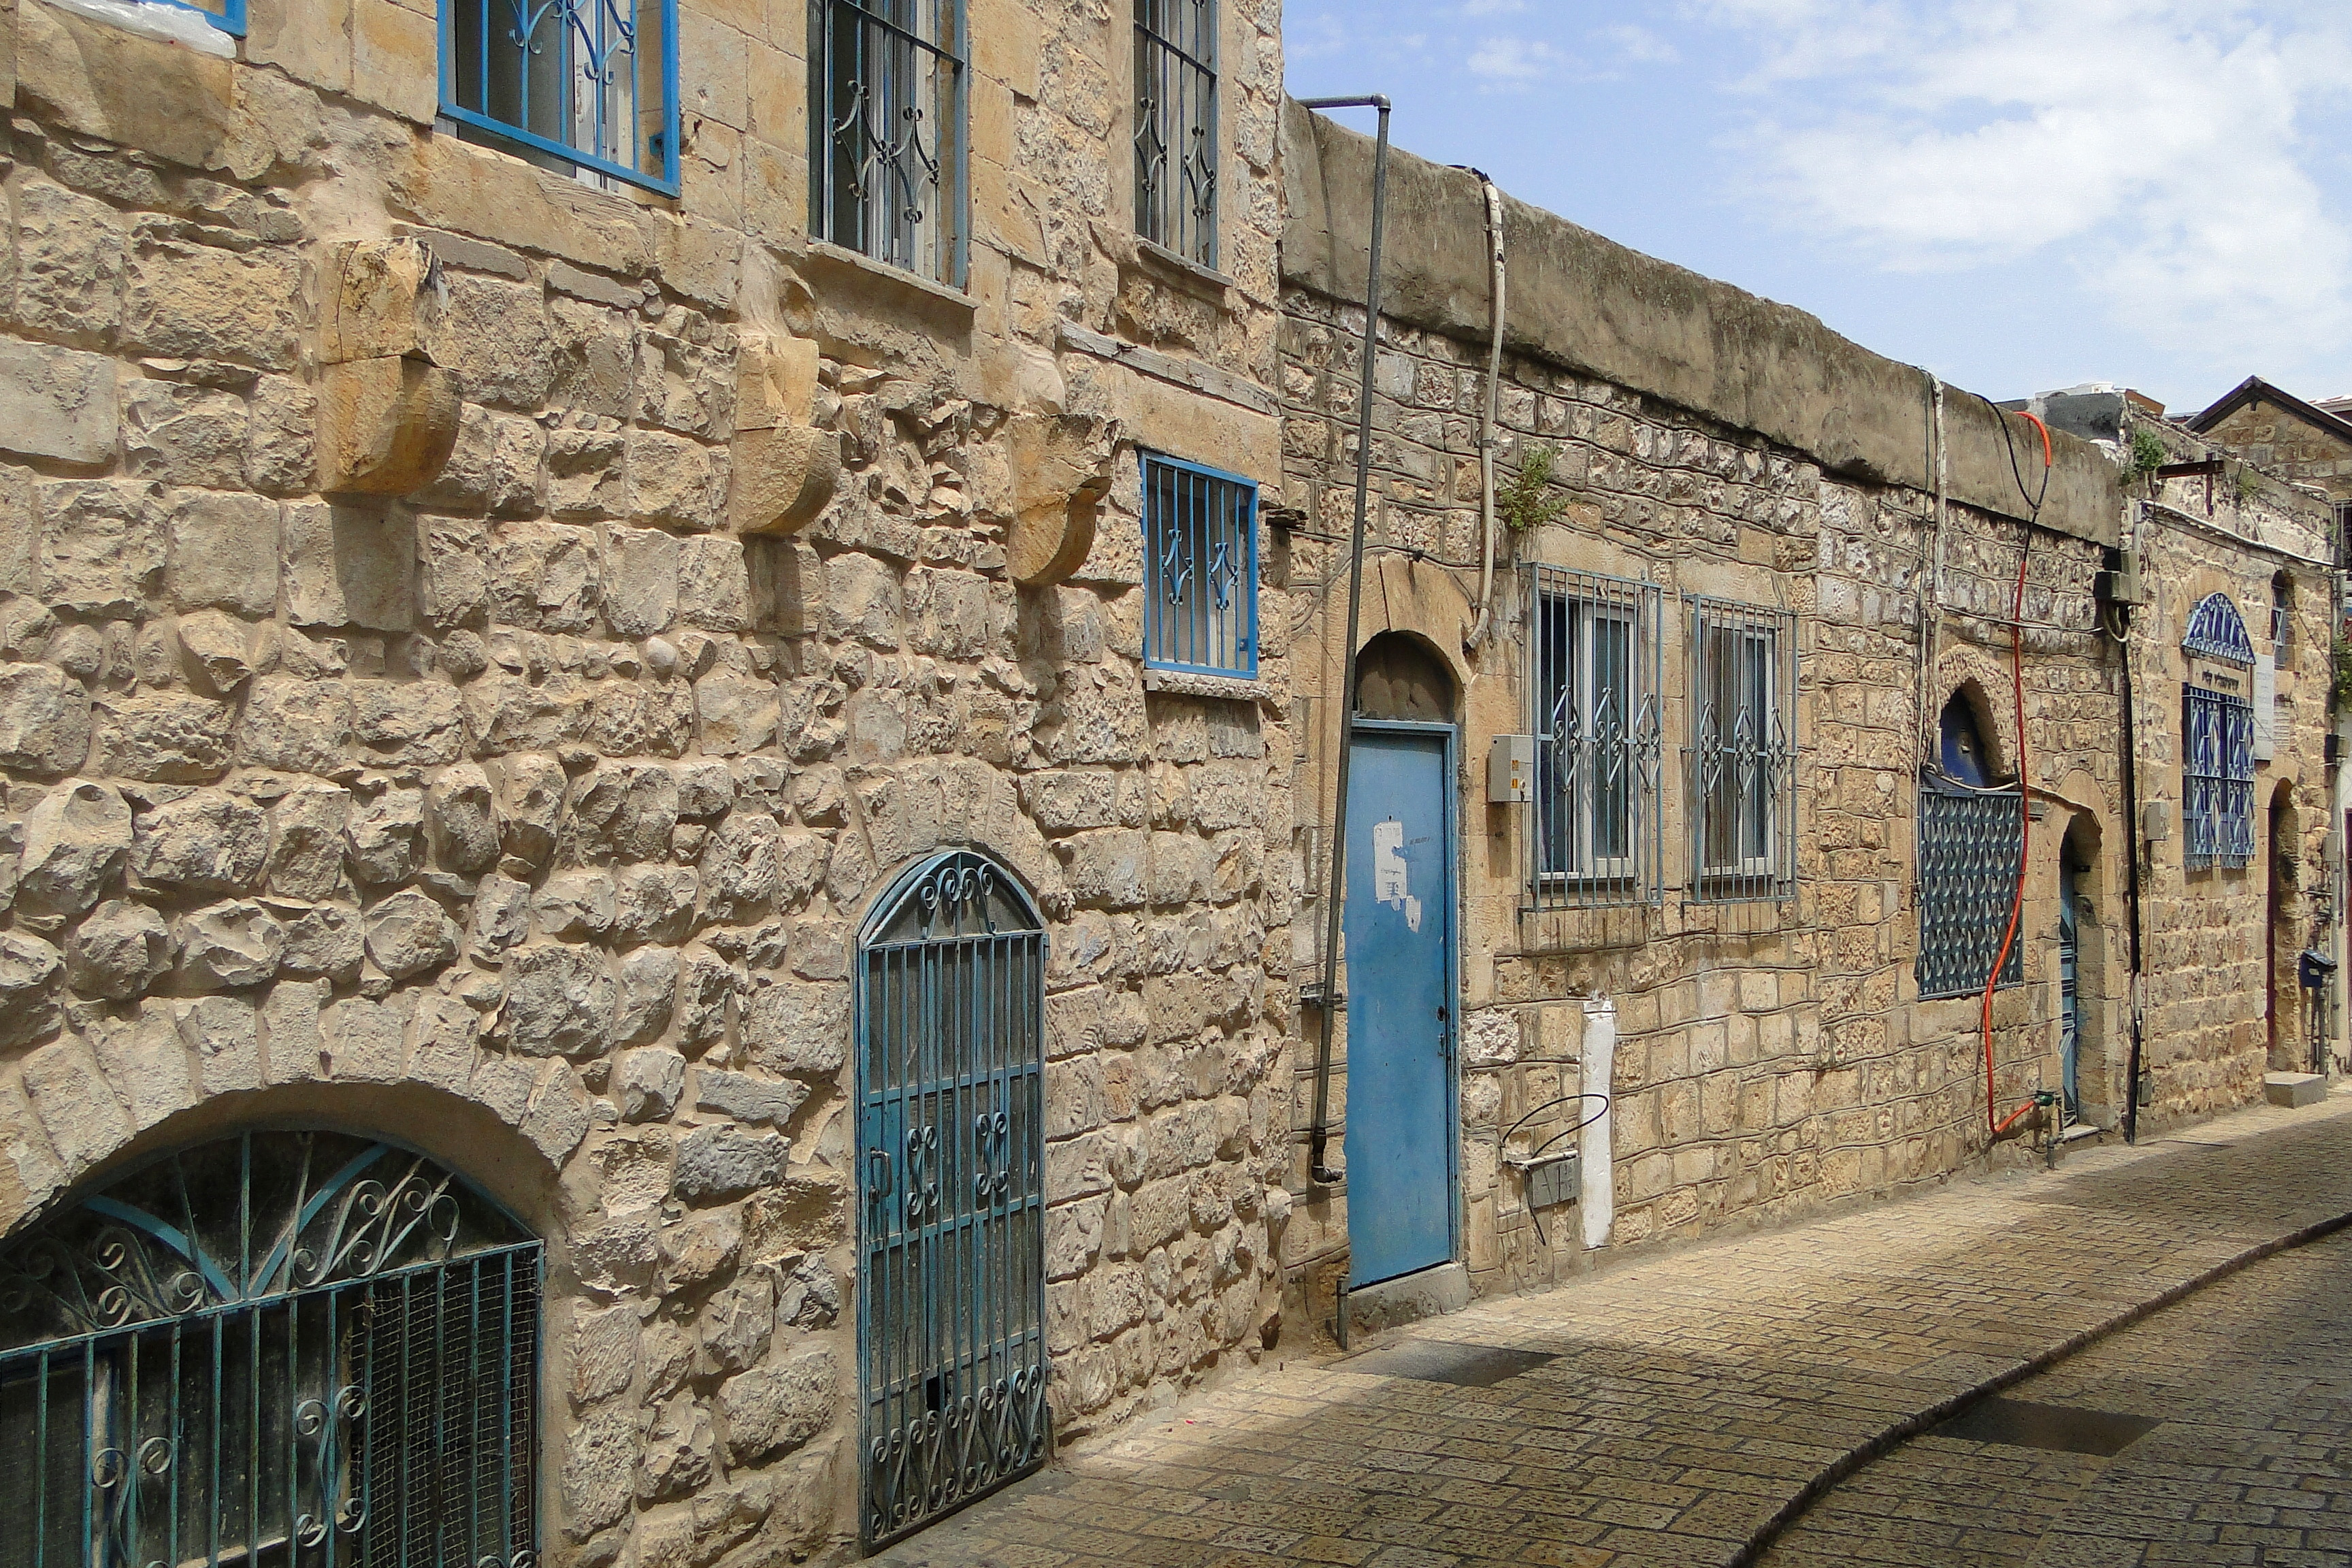 Safed Israel  City new picture : ... Architecture Tsfat Safed Galilee Israel 03 5713997600